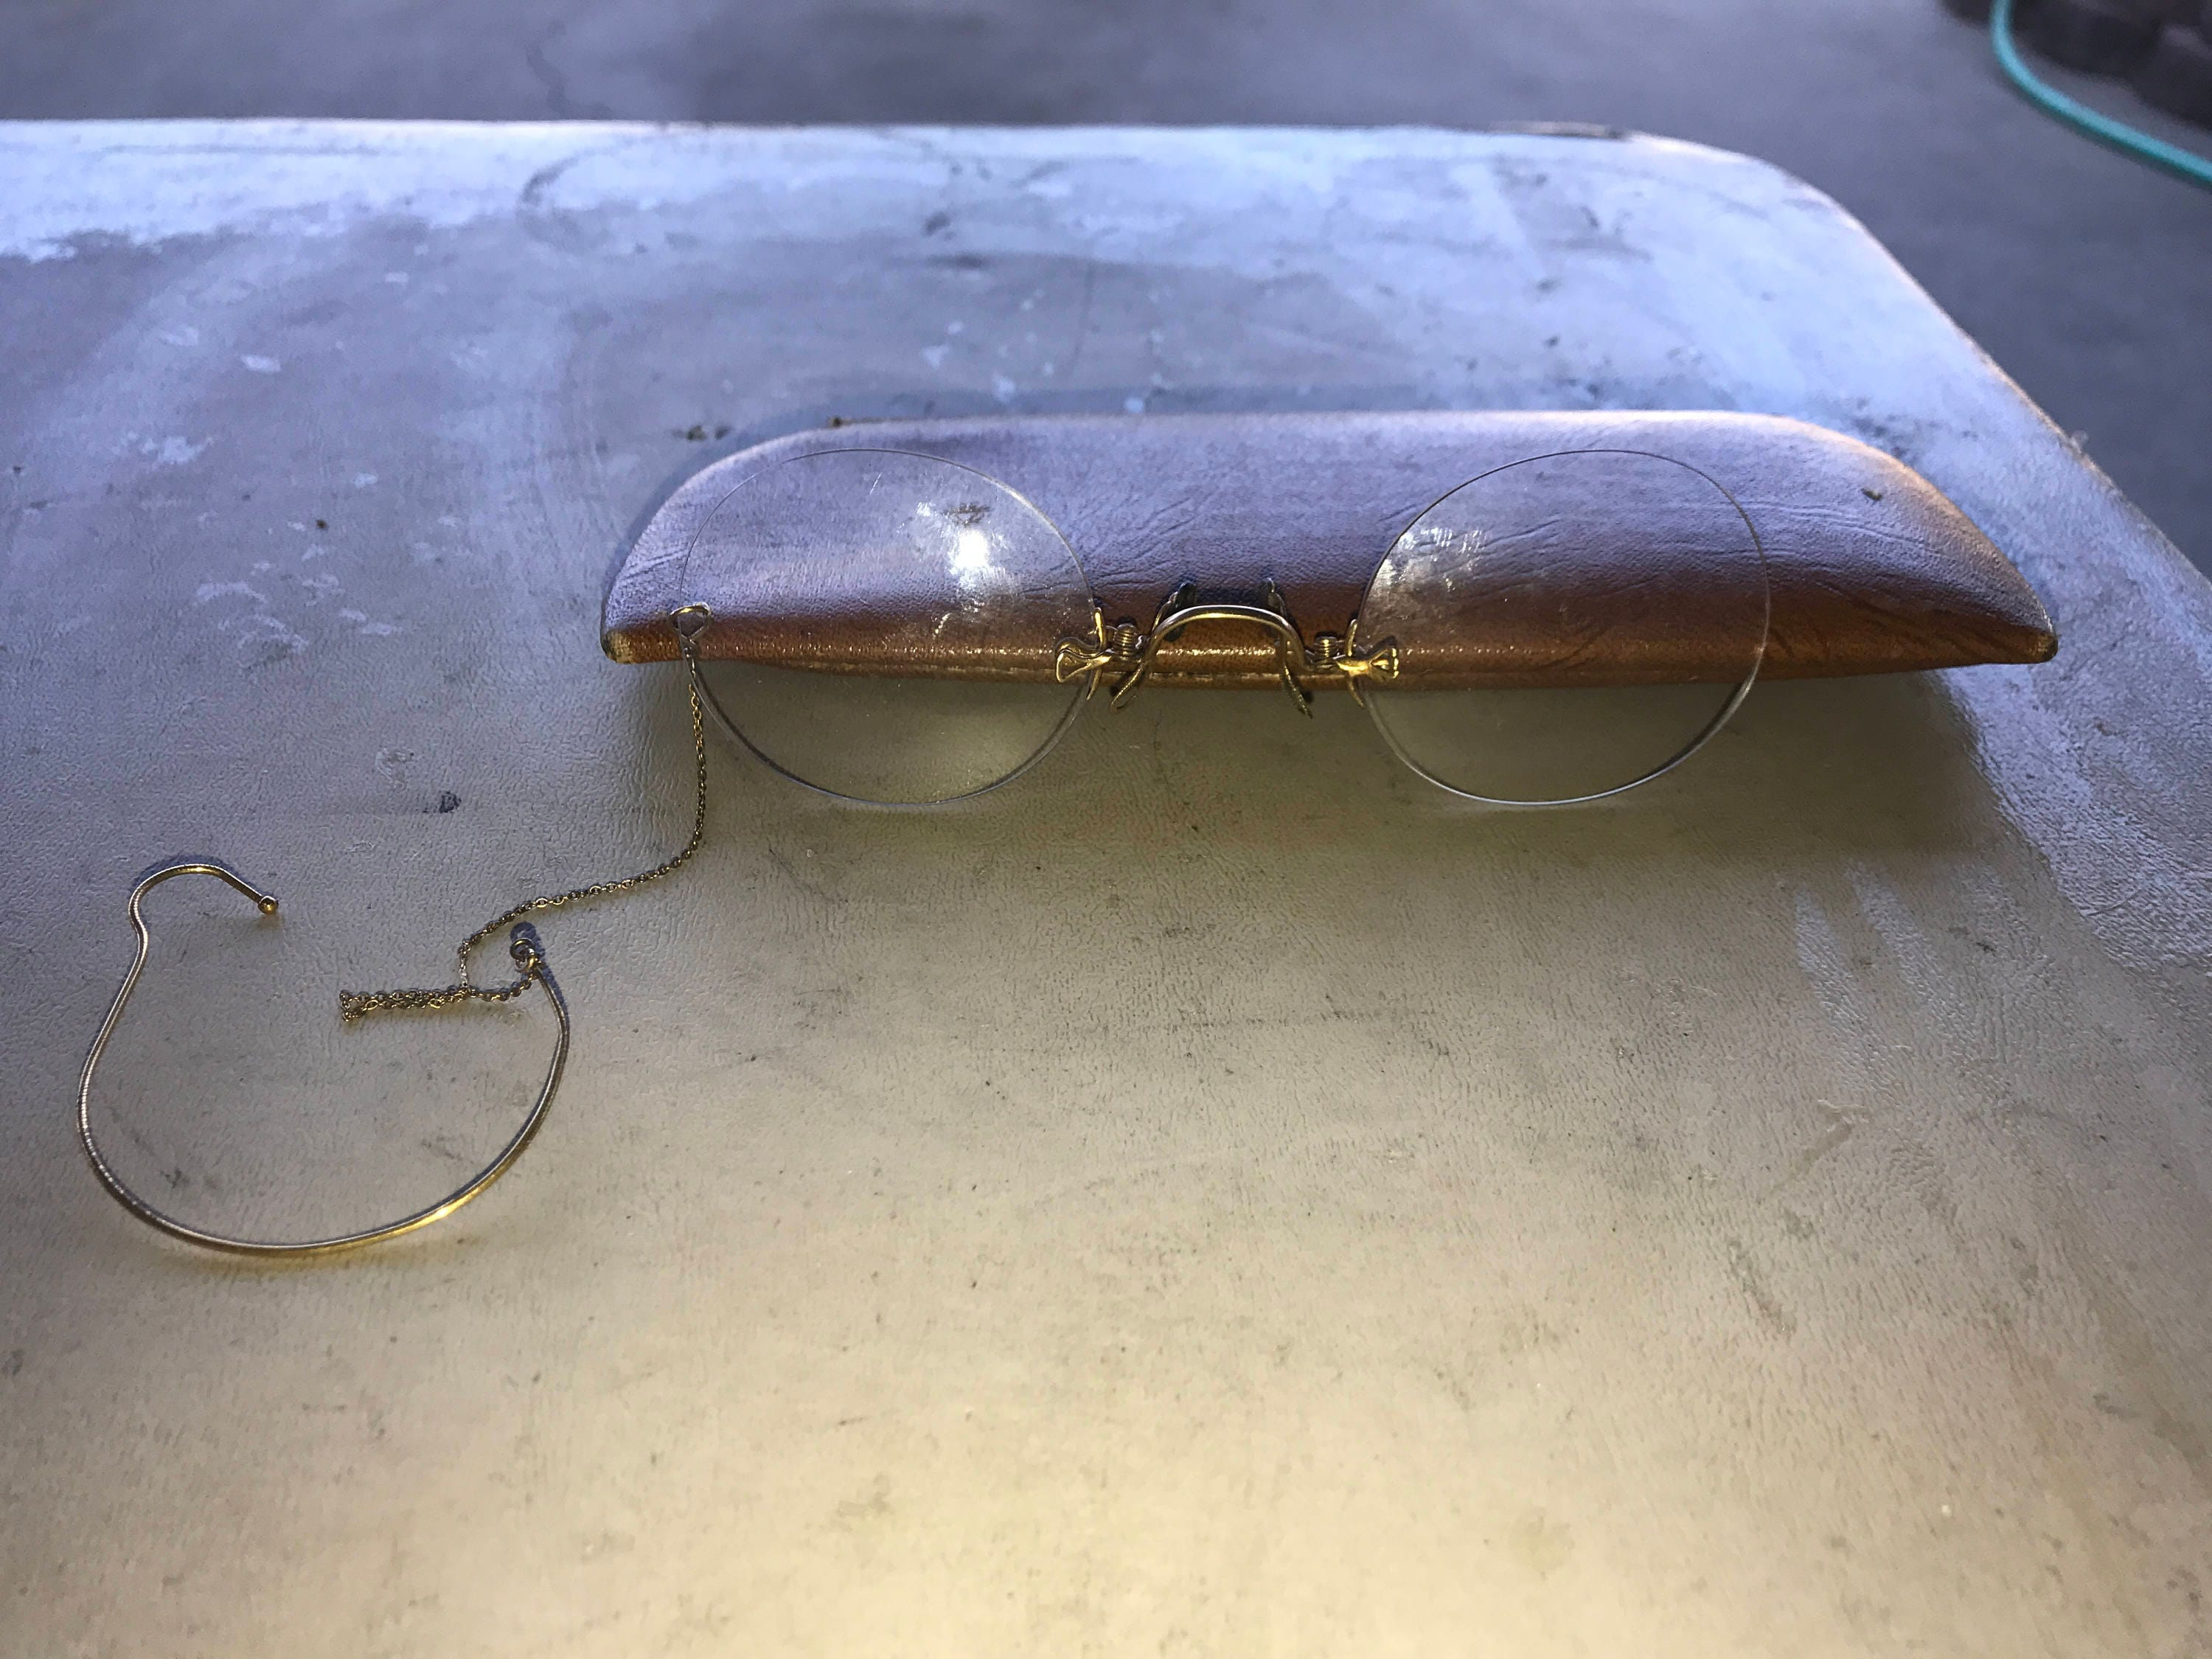 abc4ccce41 Pair Antique Pince Nez Pinch Nose Spectacles No Frame Glasses w Gold Tone  Chain